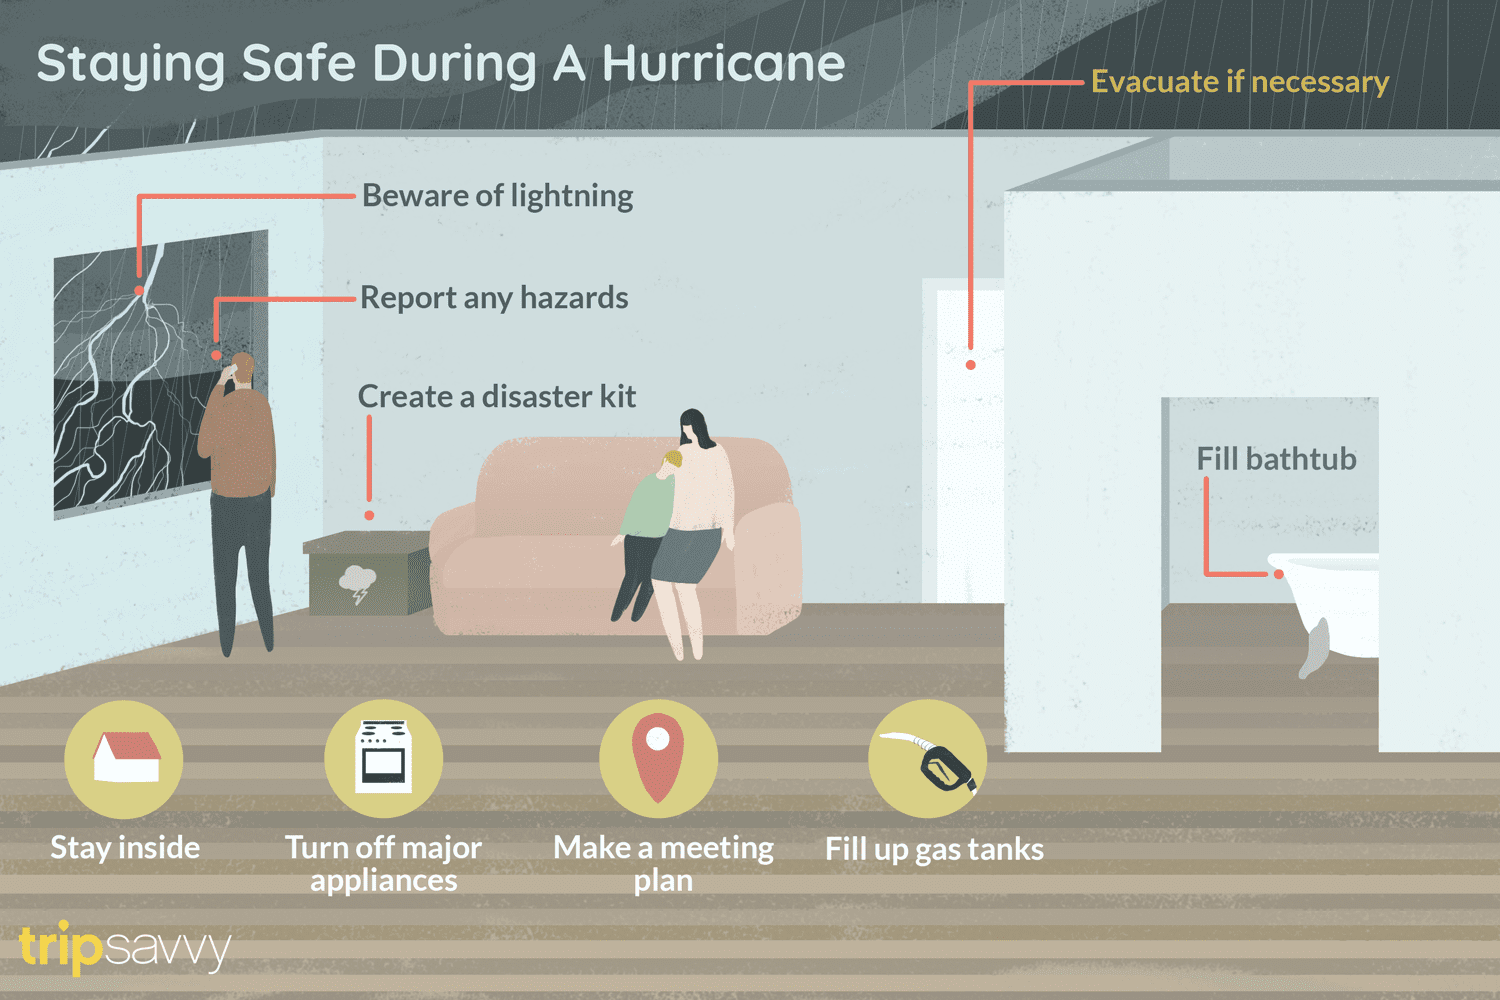 Safety during a hurricane